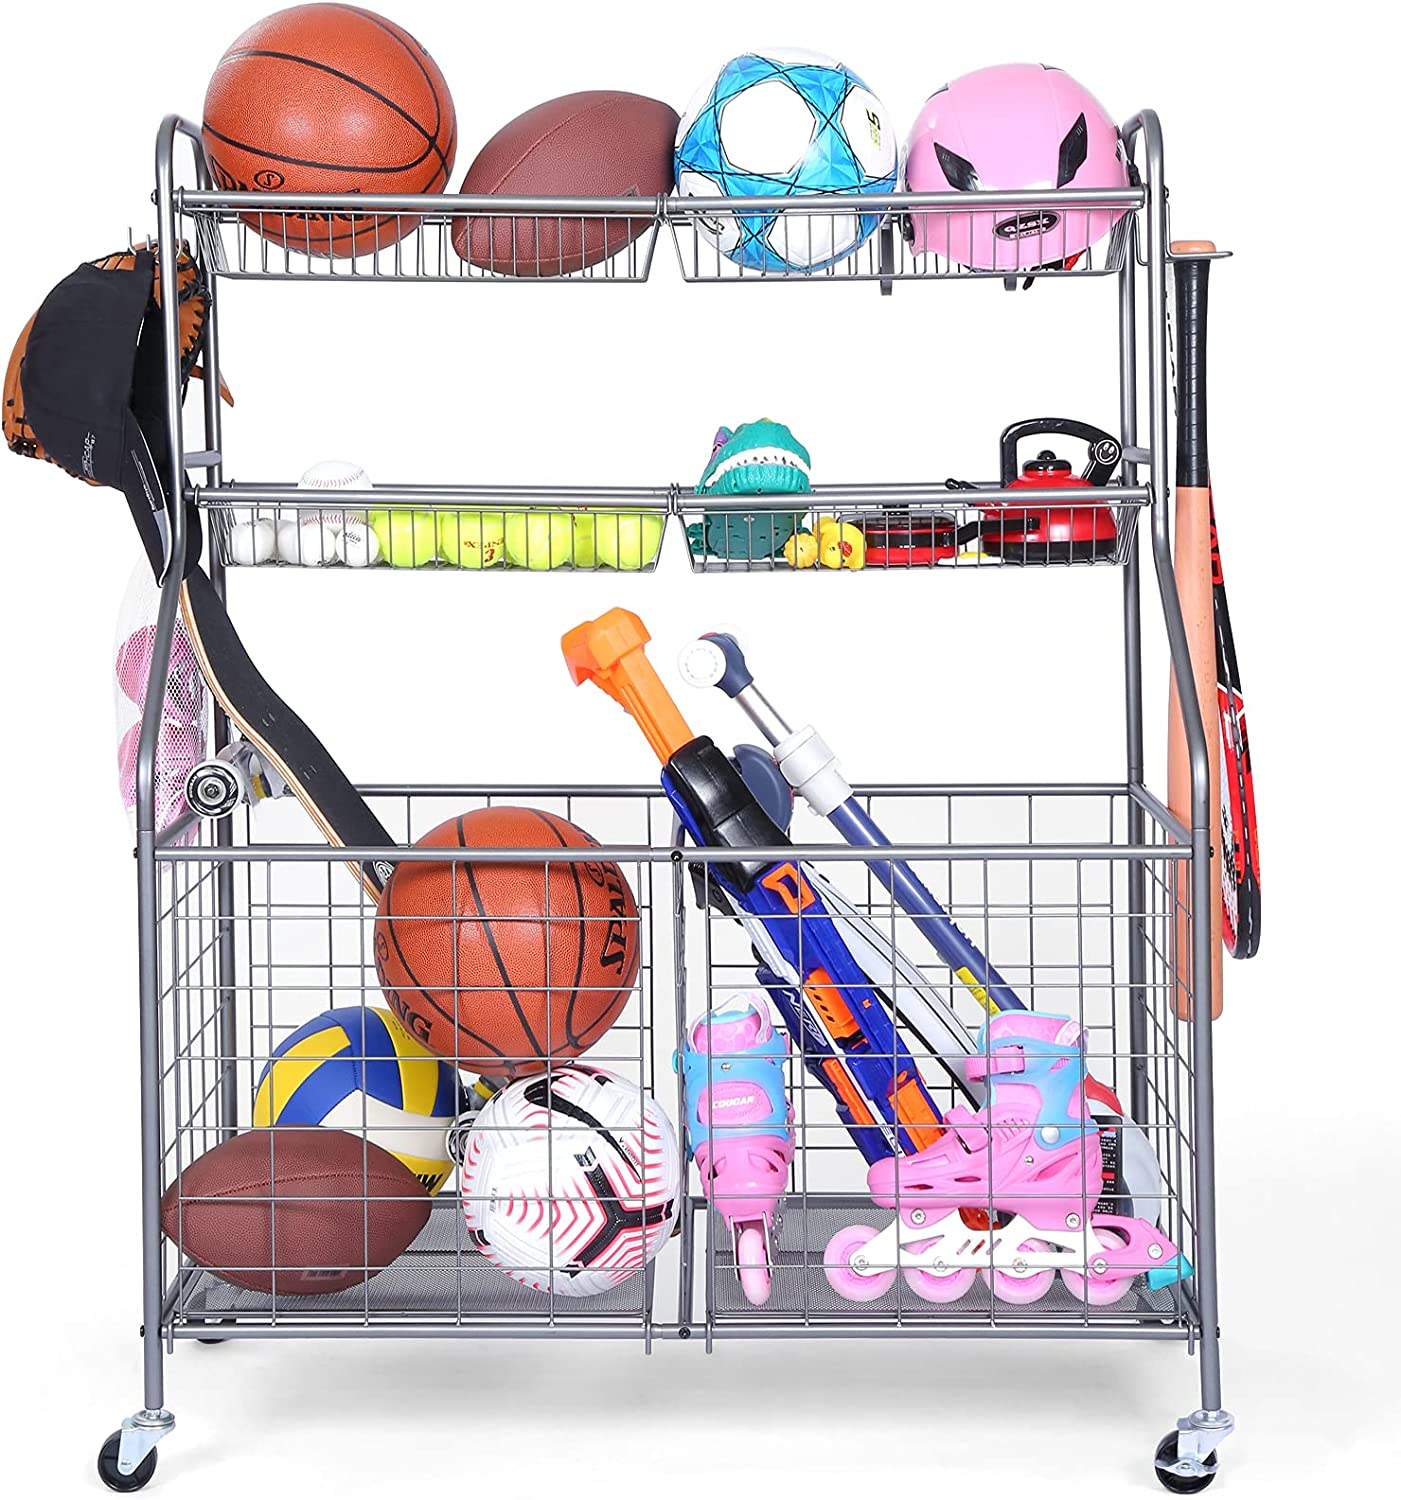 Time sale Kinghouse Garage Sports Easy-to-use Organizer Equipment St